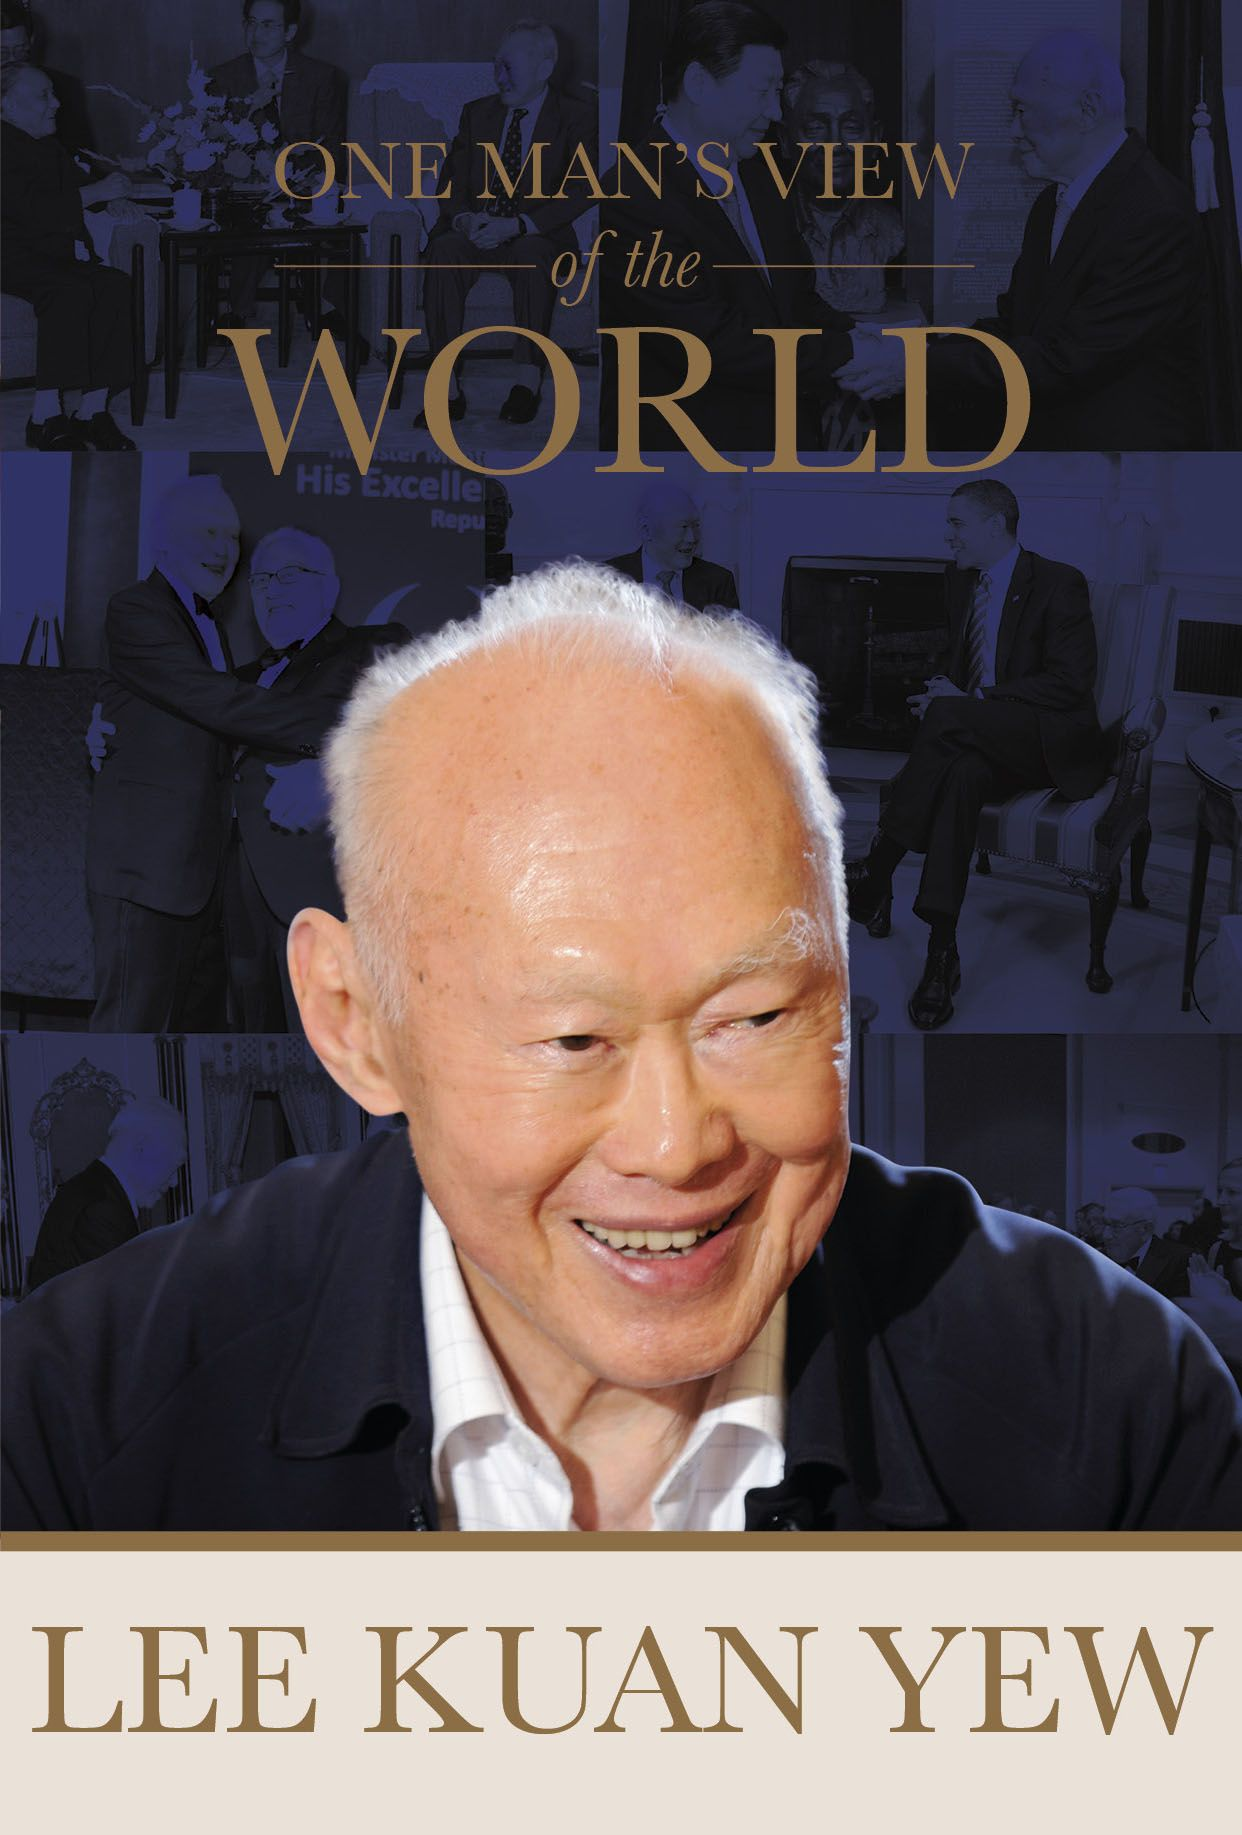 Kuan download truths lee hard yew epub